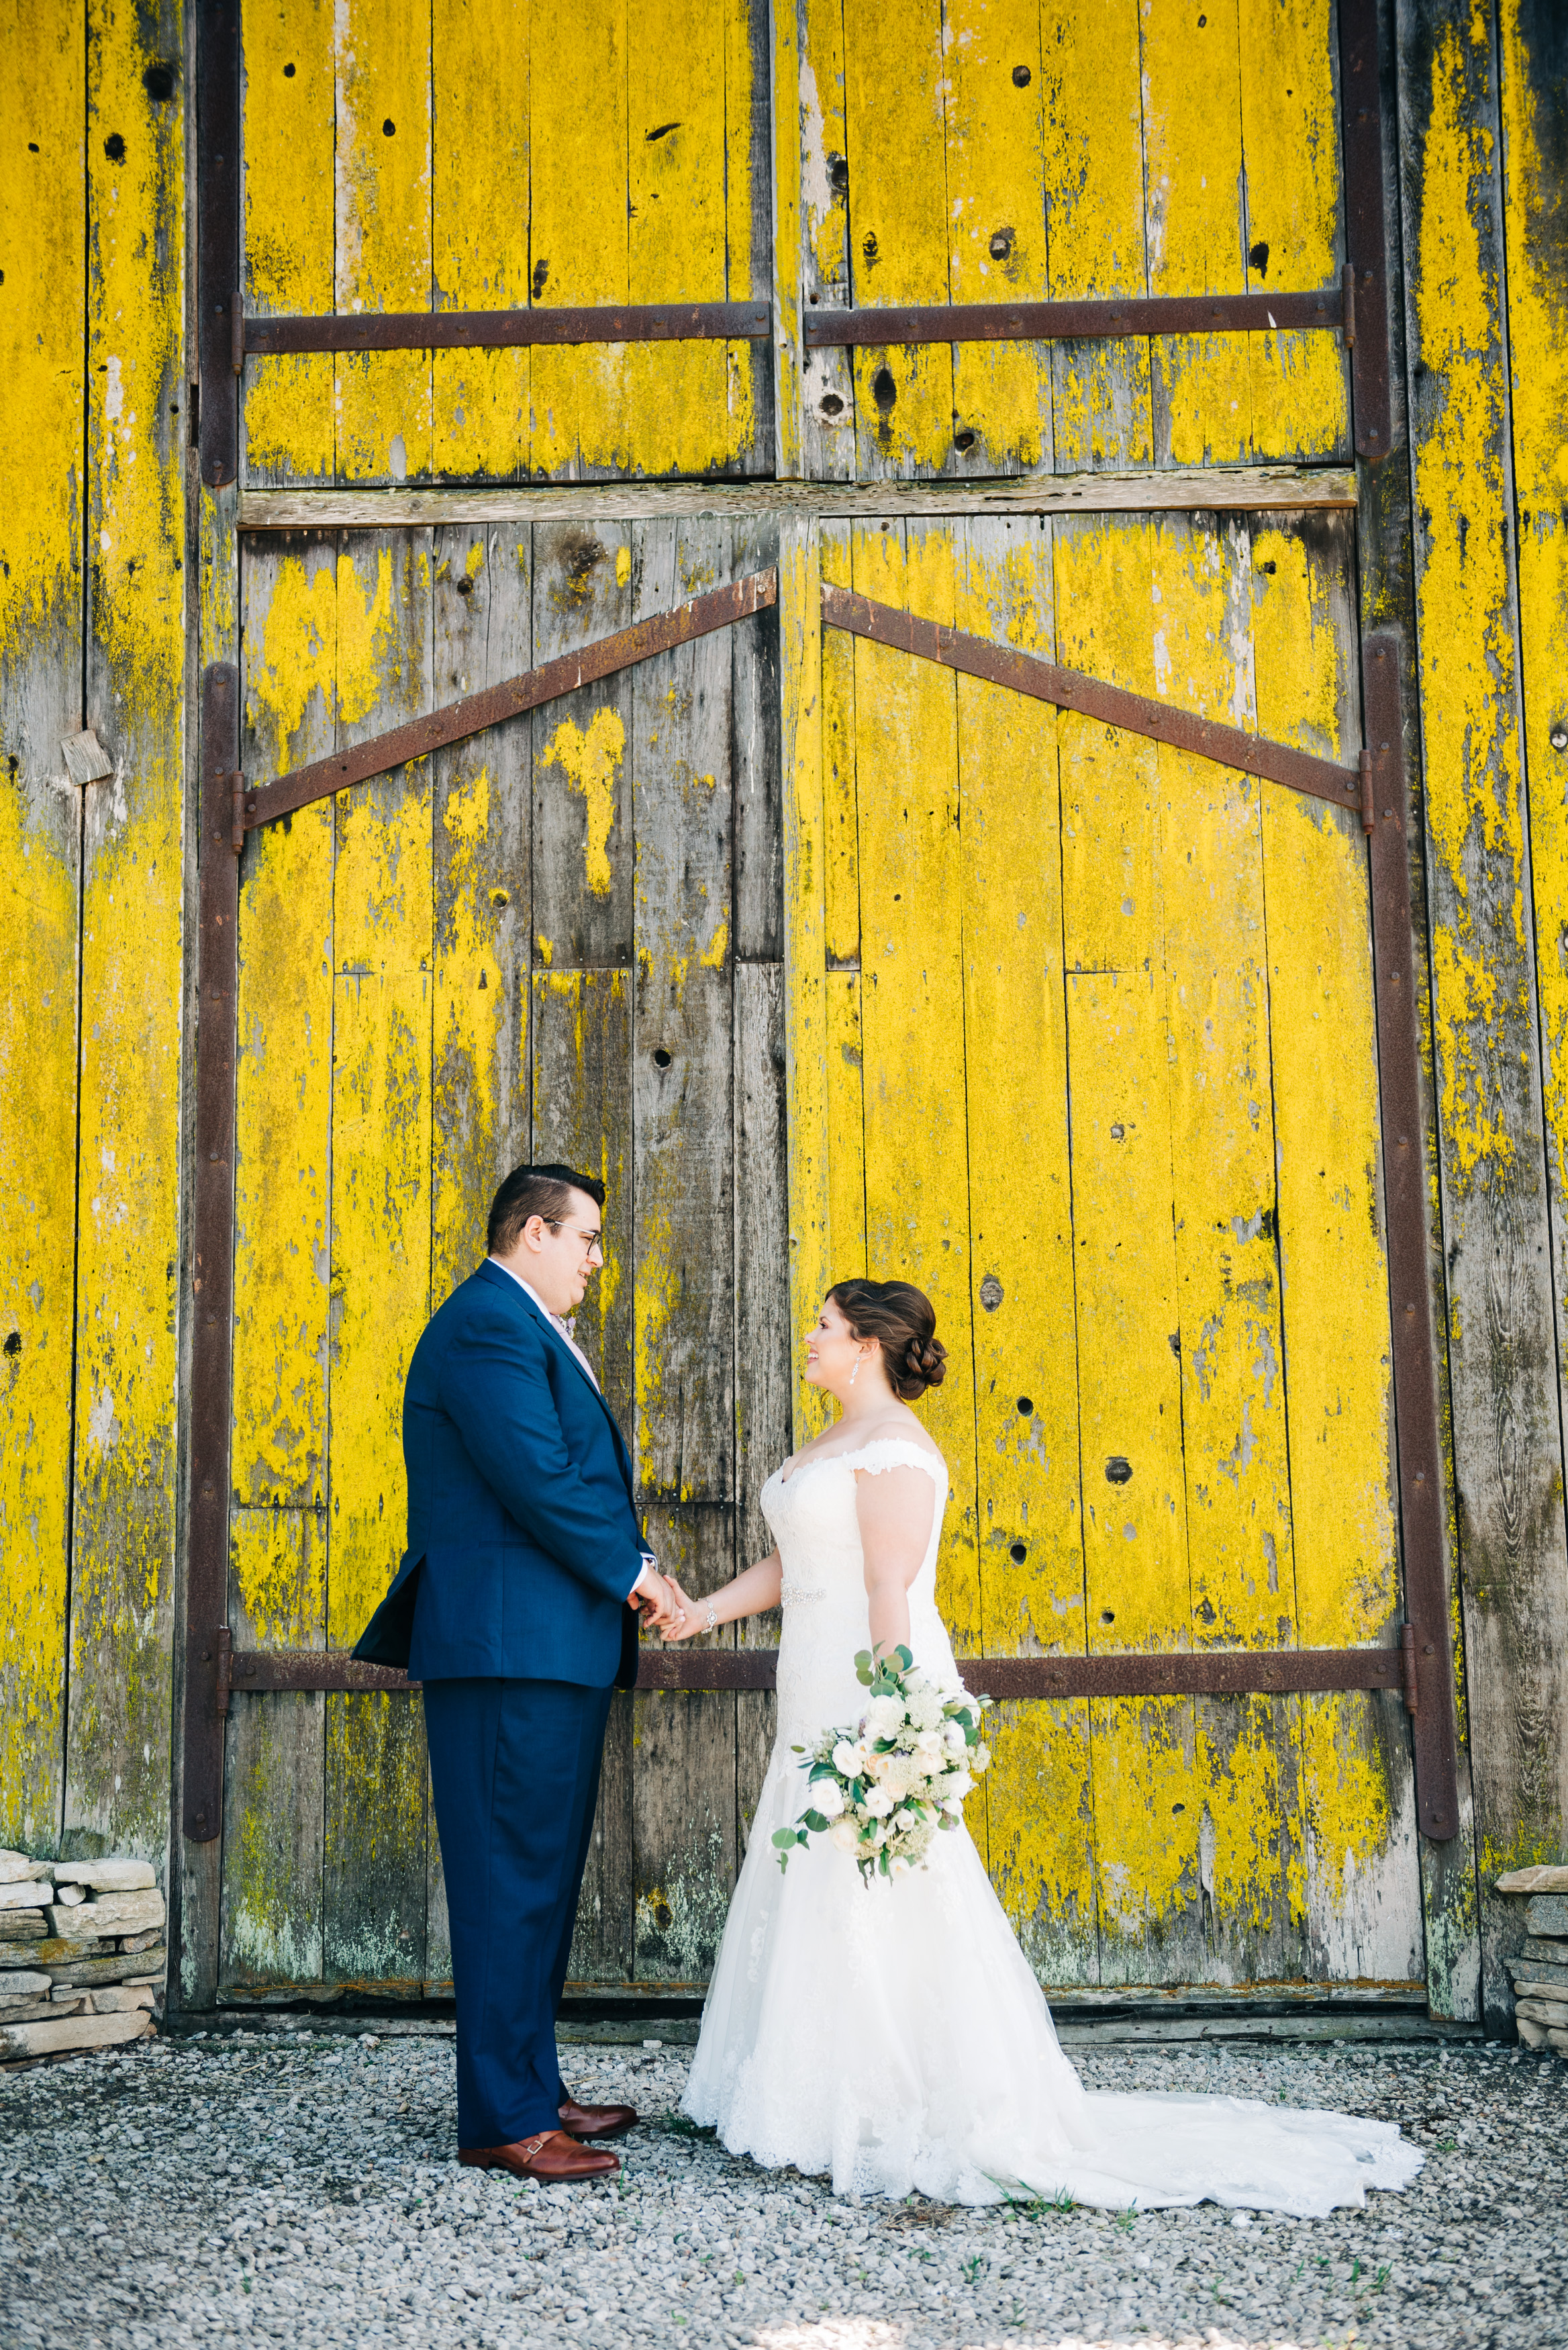 Sanford Winery & Vineyards, Lompoc, Ca Wedding Photographer | Jennifer Lourie